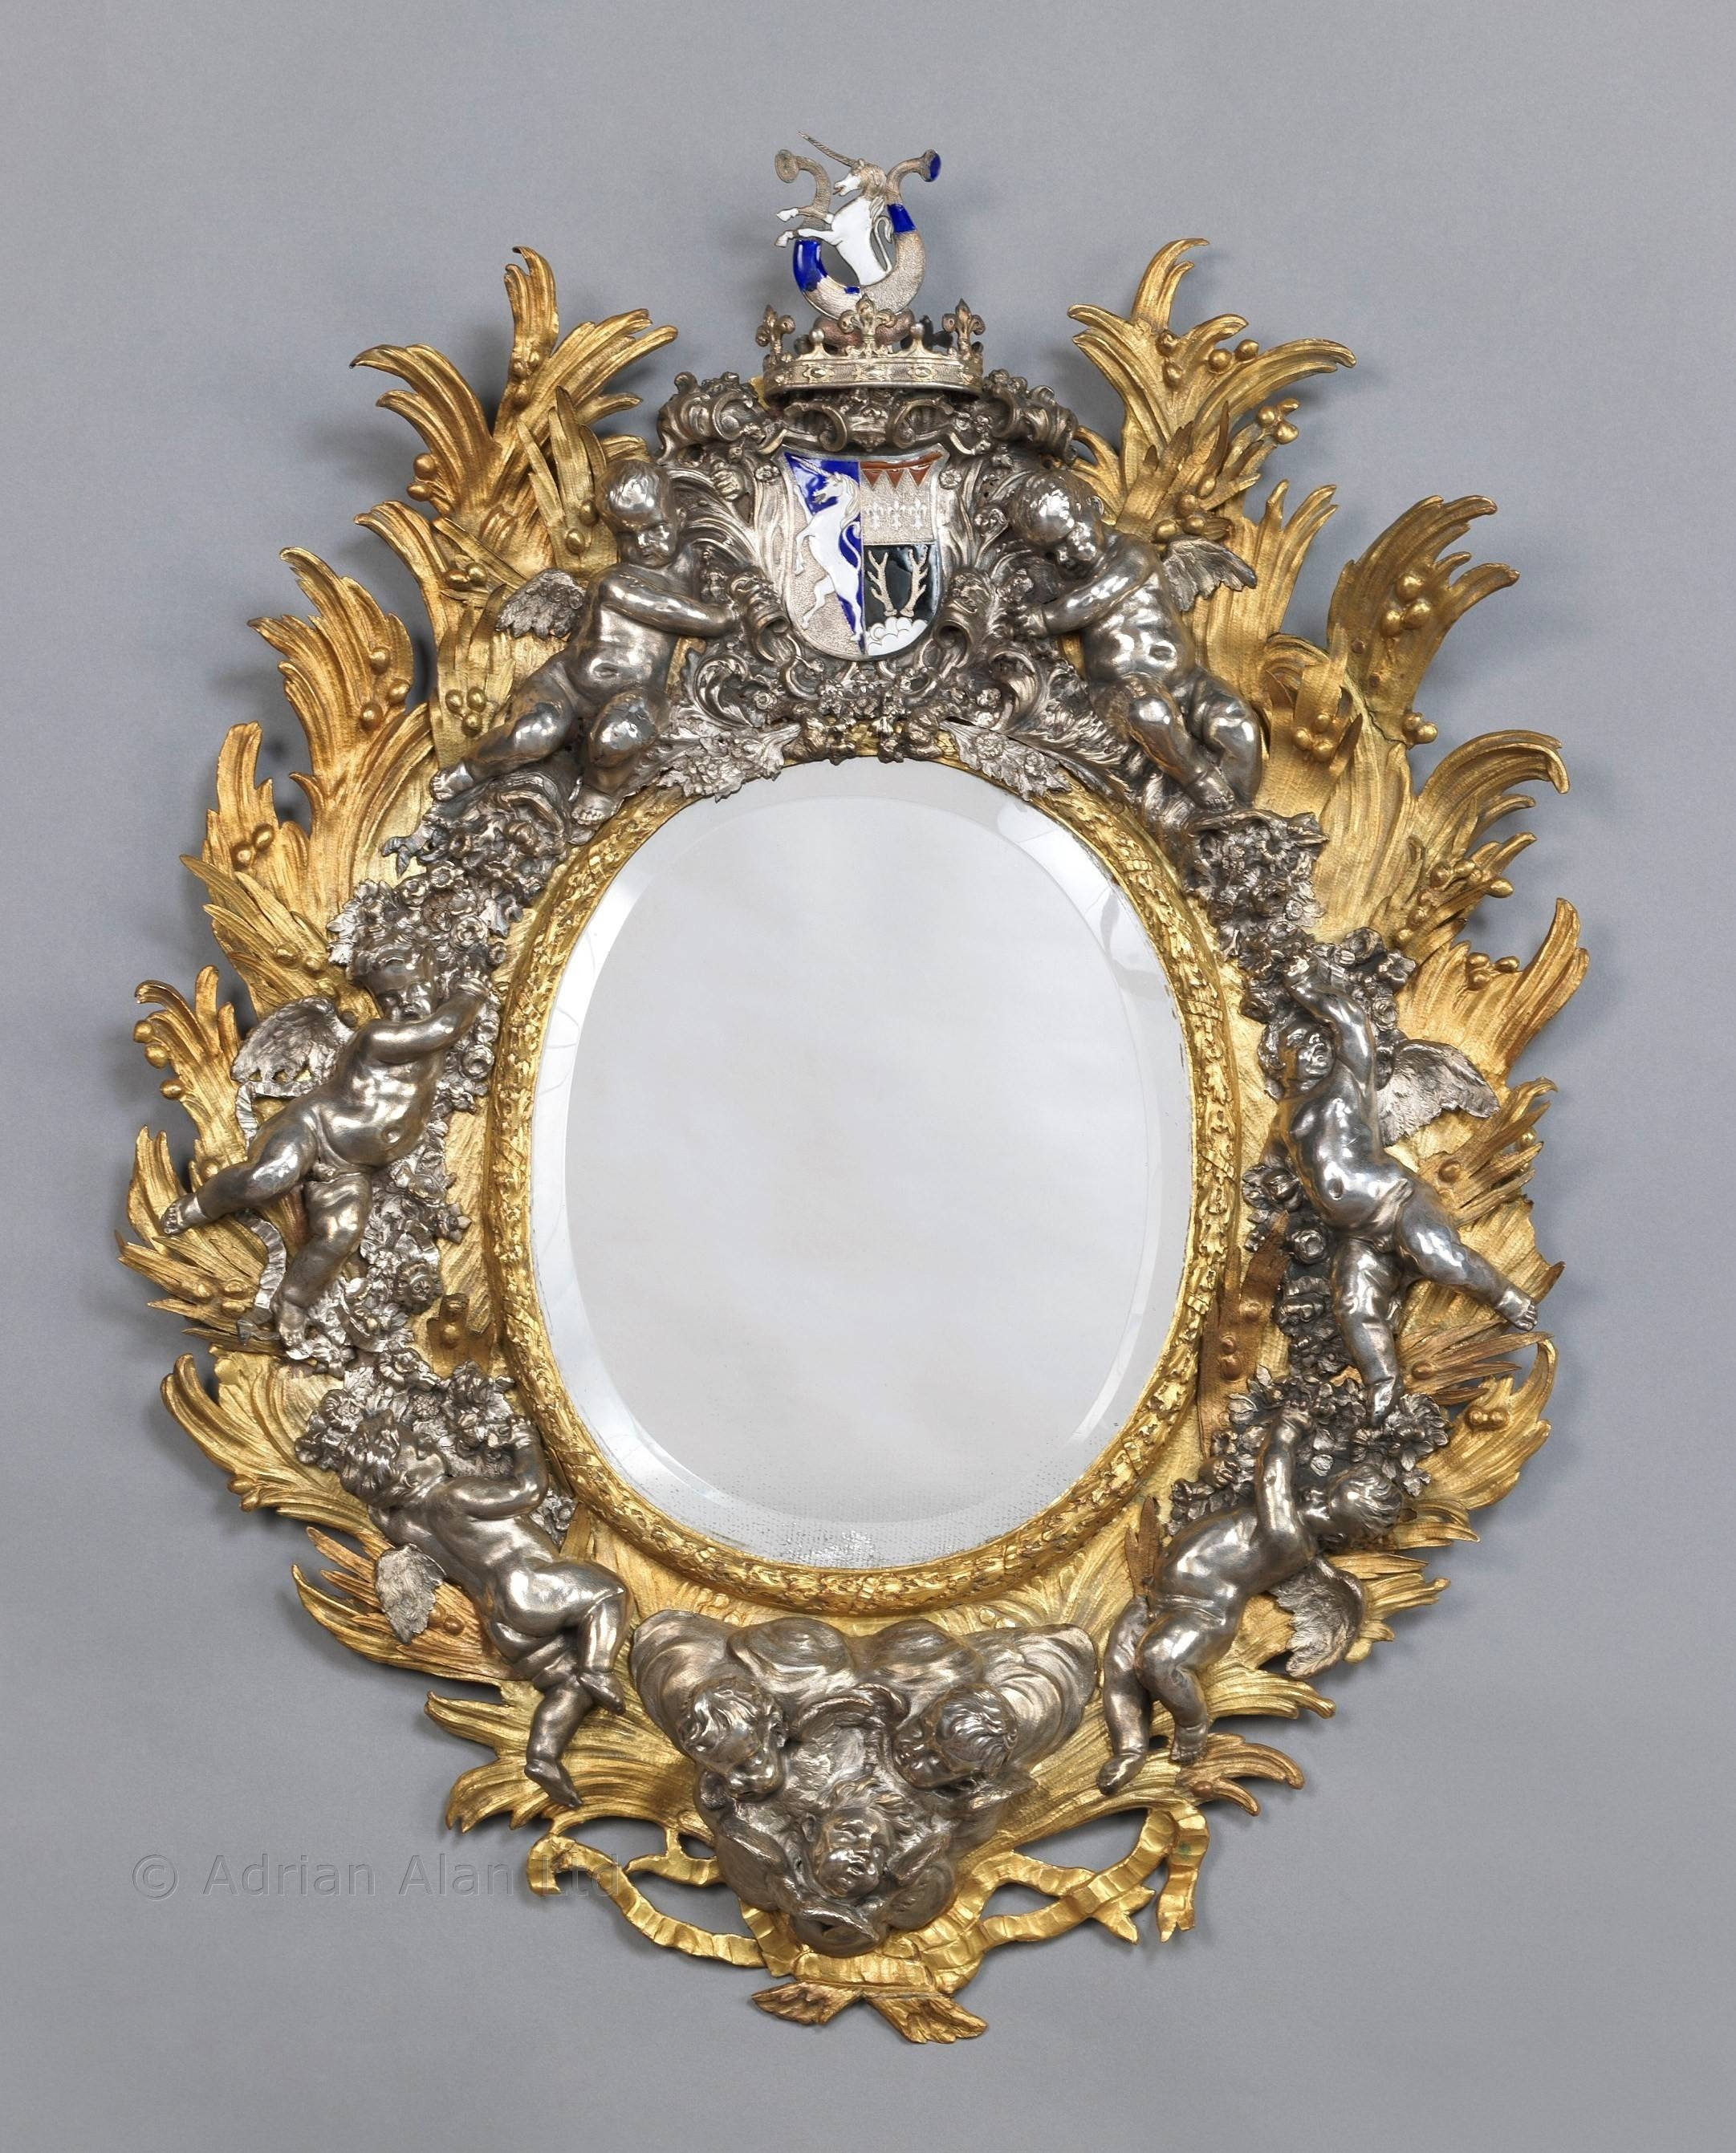 An Important Baroque Style Silvered And Gilt-Bronze Cherub Mirror for Baroque Style Mirrors (Image 1 of 25)